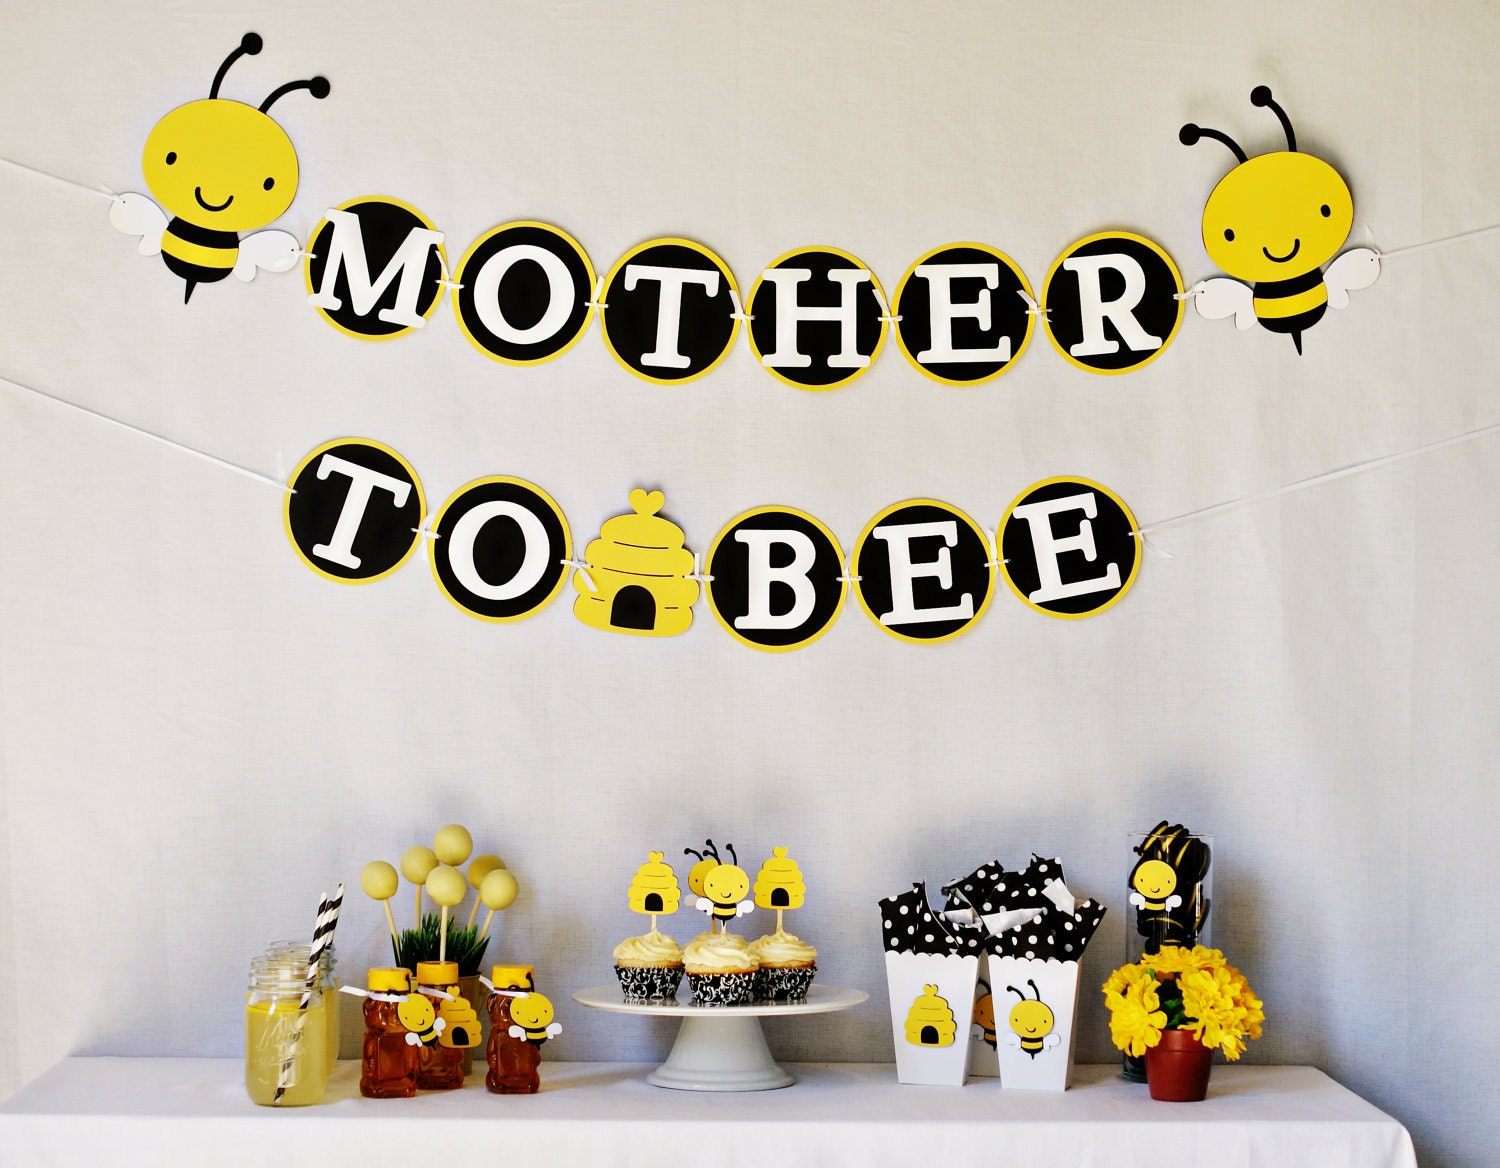 Mommy To Bee Spring Baby Shower Ideas Image Credit Etsystatic